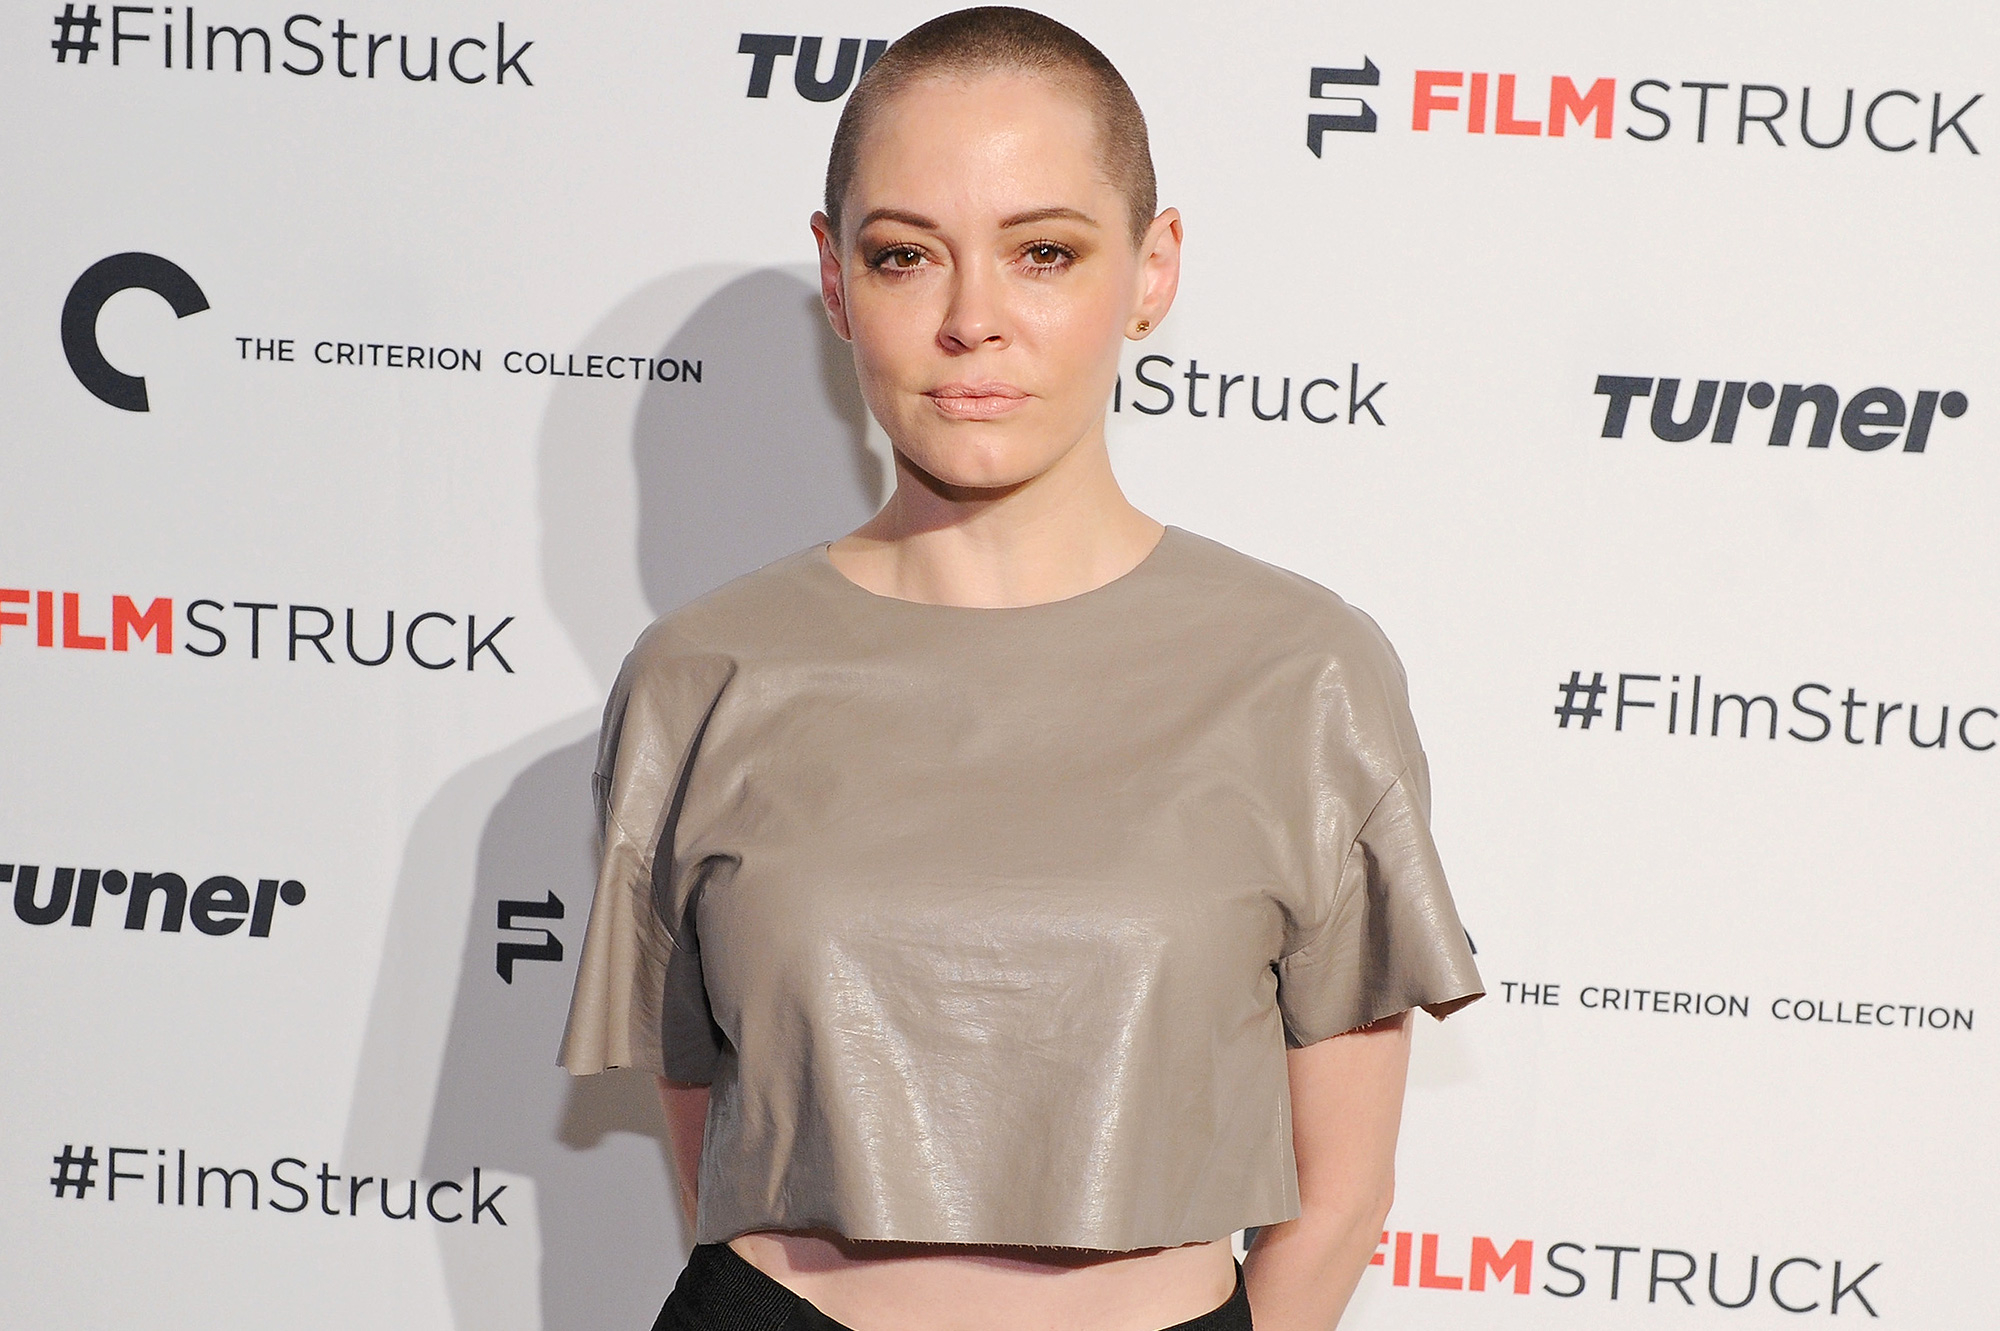 Rose McGowan, Filmstruck